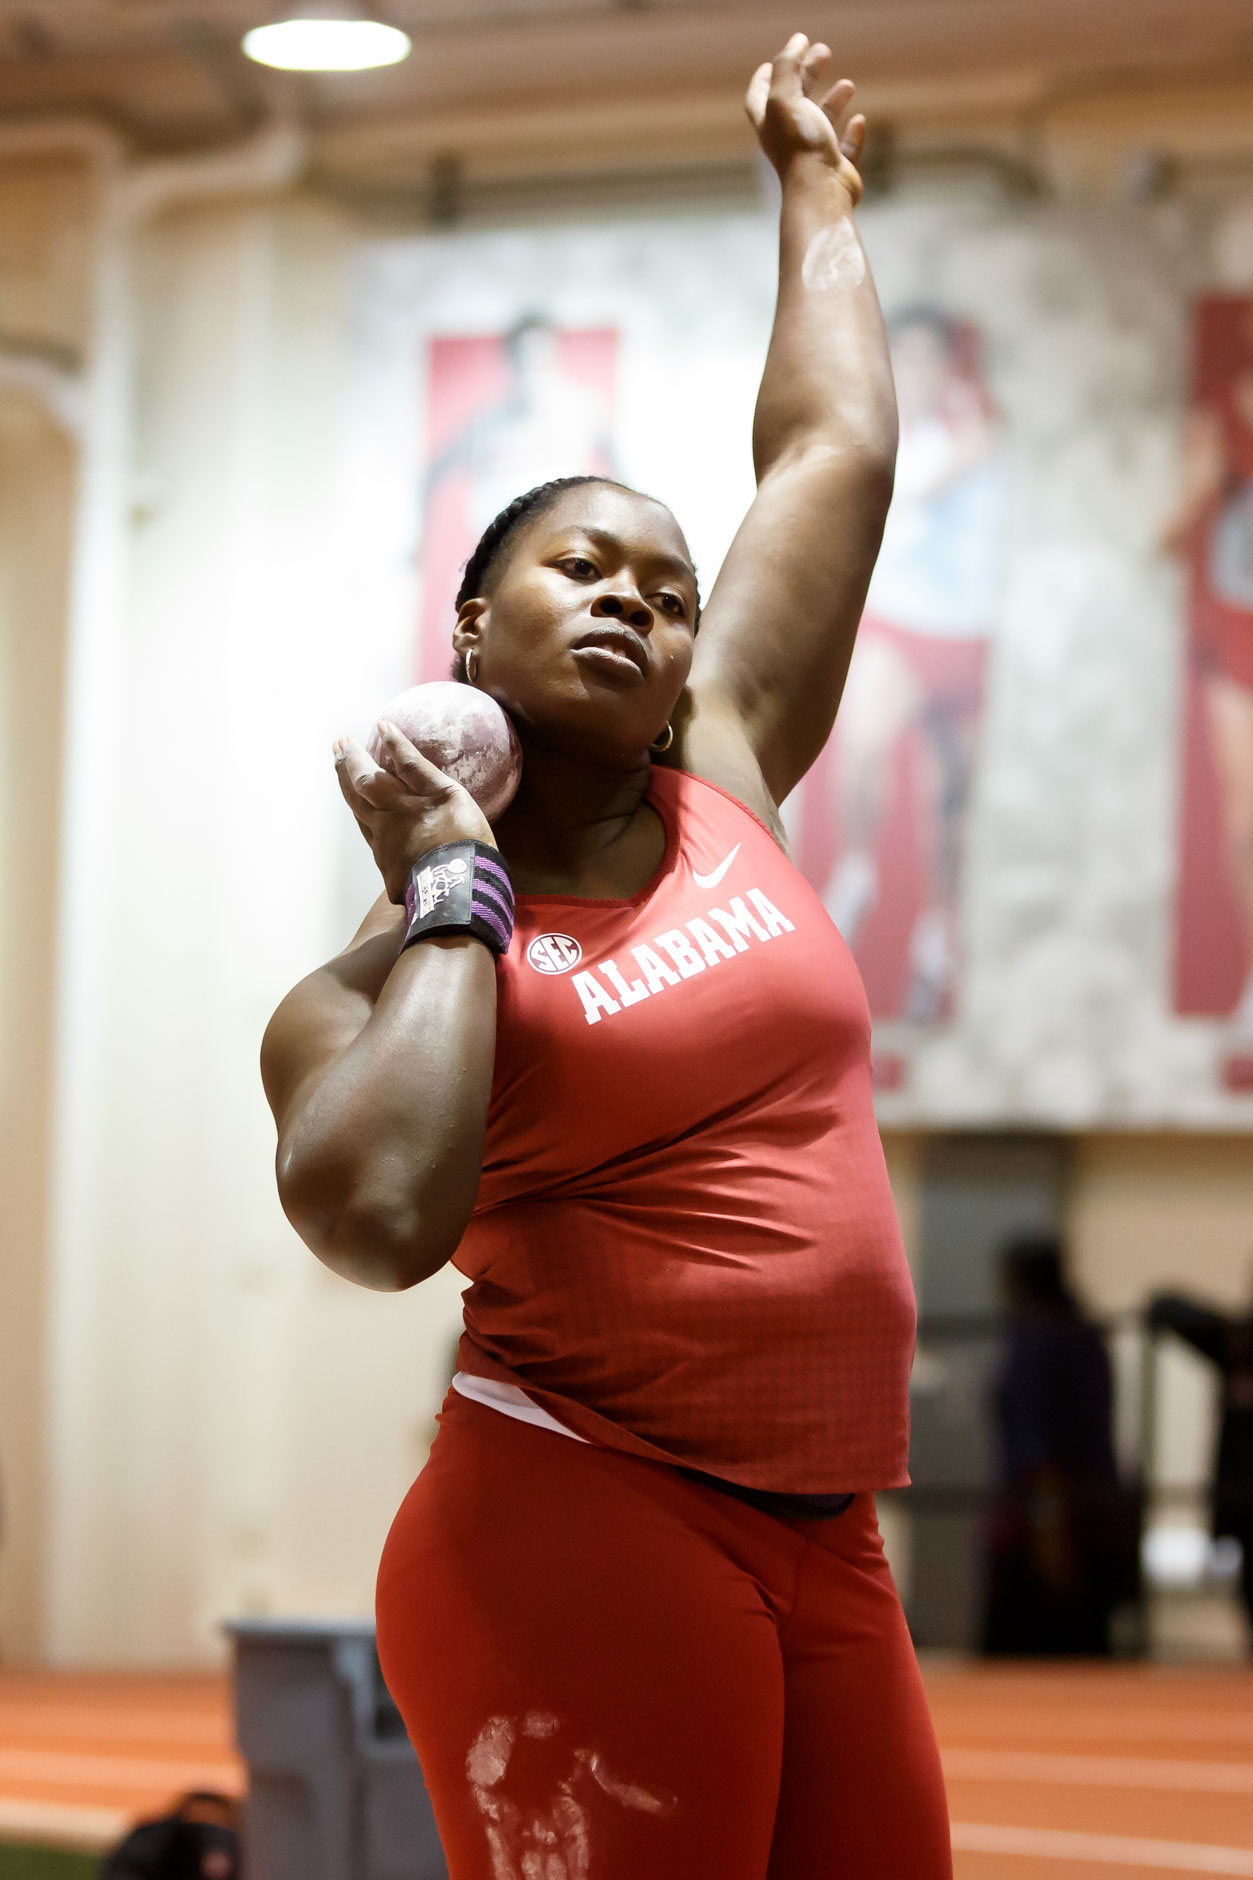 Alabama's Cherisse Murray competes in the shot put during the Indiana University Relays in Bloomington, Indiana on Saturday, Feb. 1, 2020. (Photo by James Brosher)